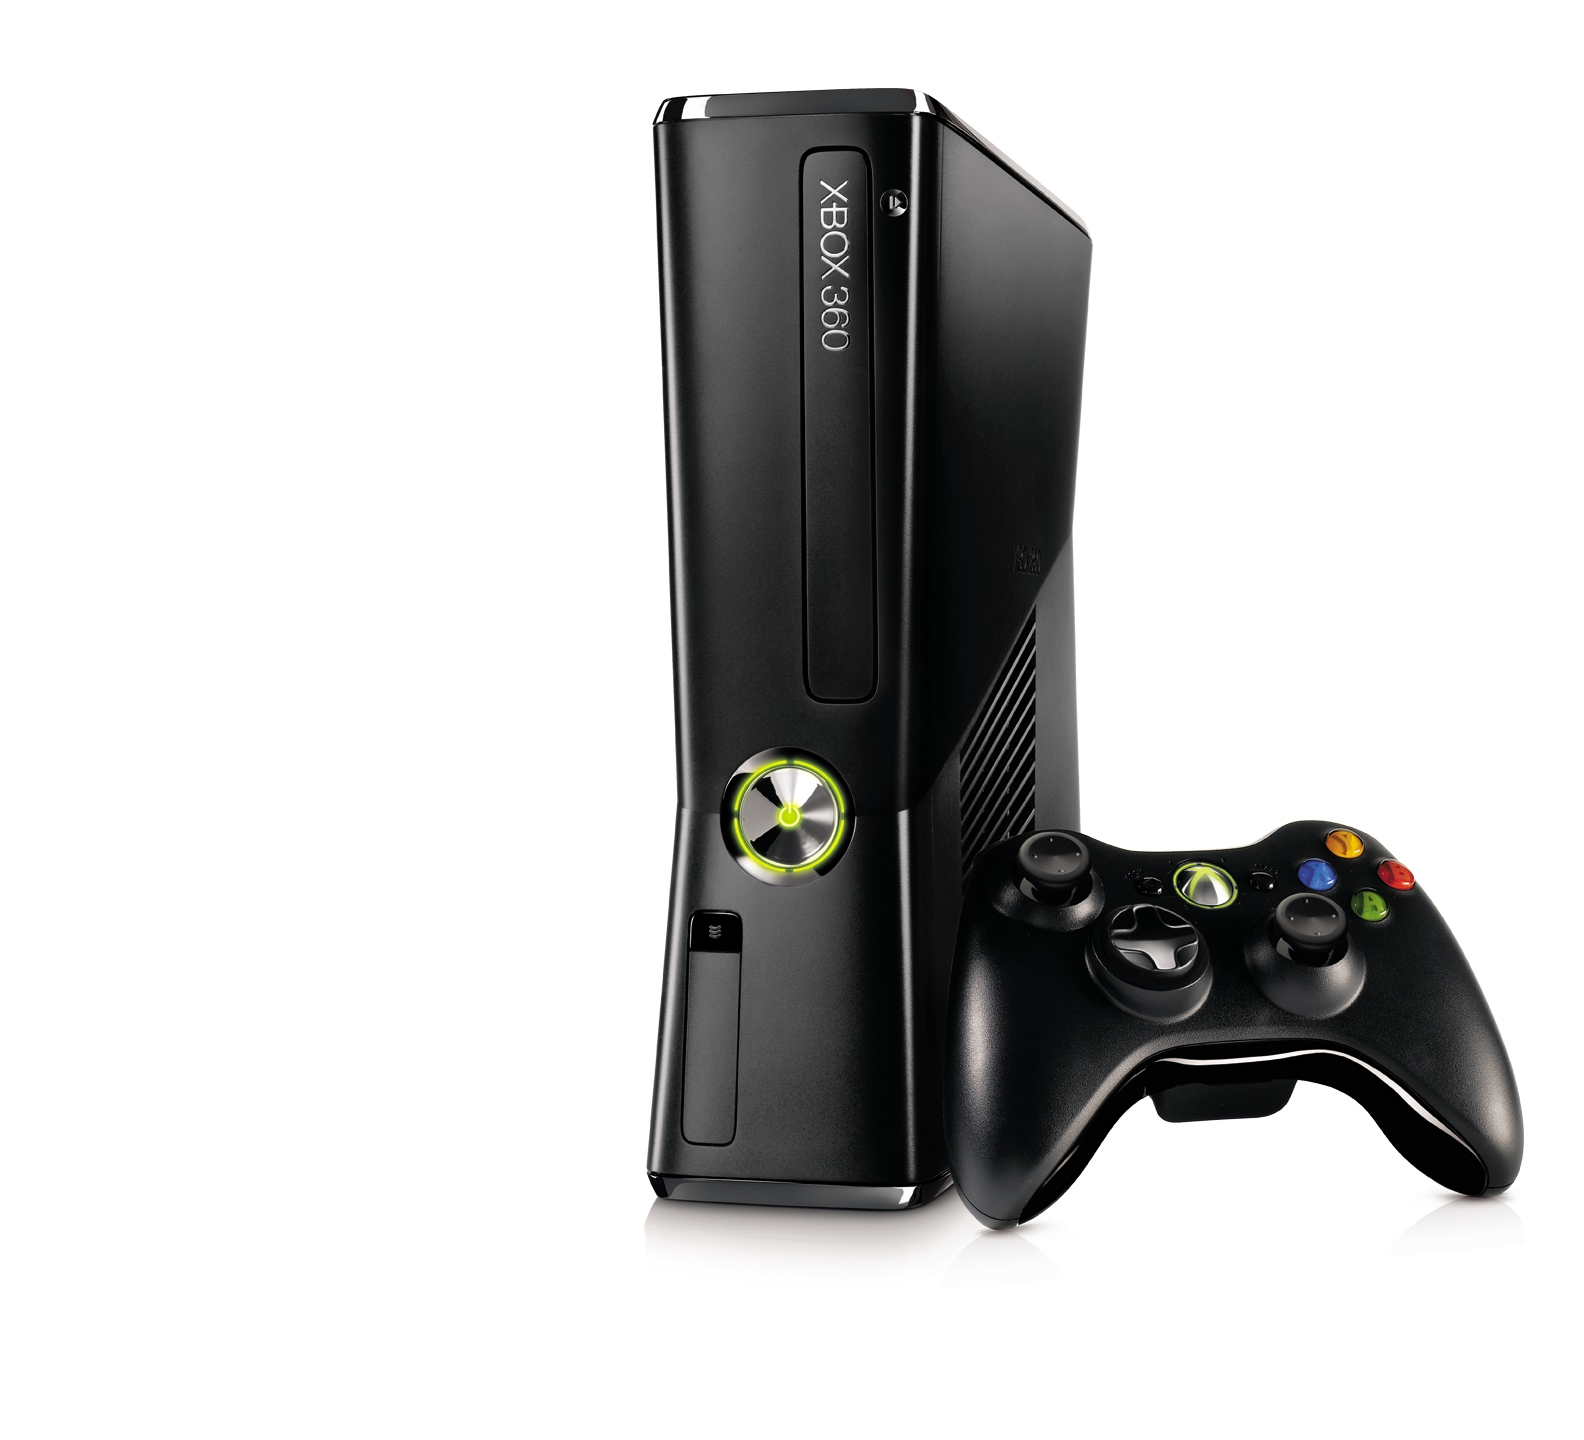 Microsoft Adds Xbox 360 250GB in Matte Black to Console ...